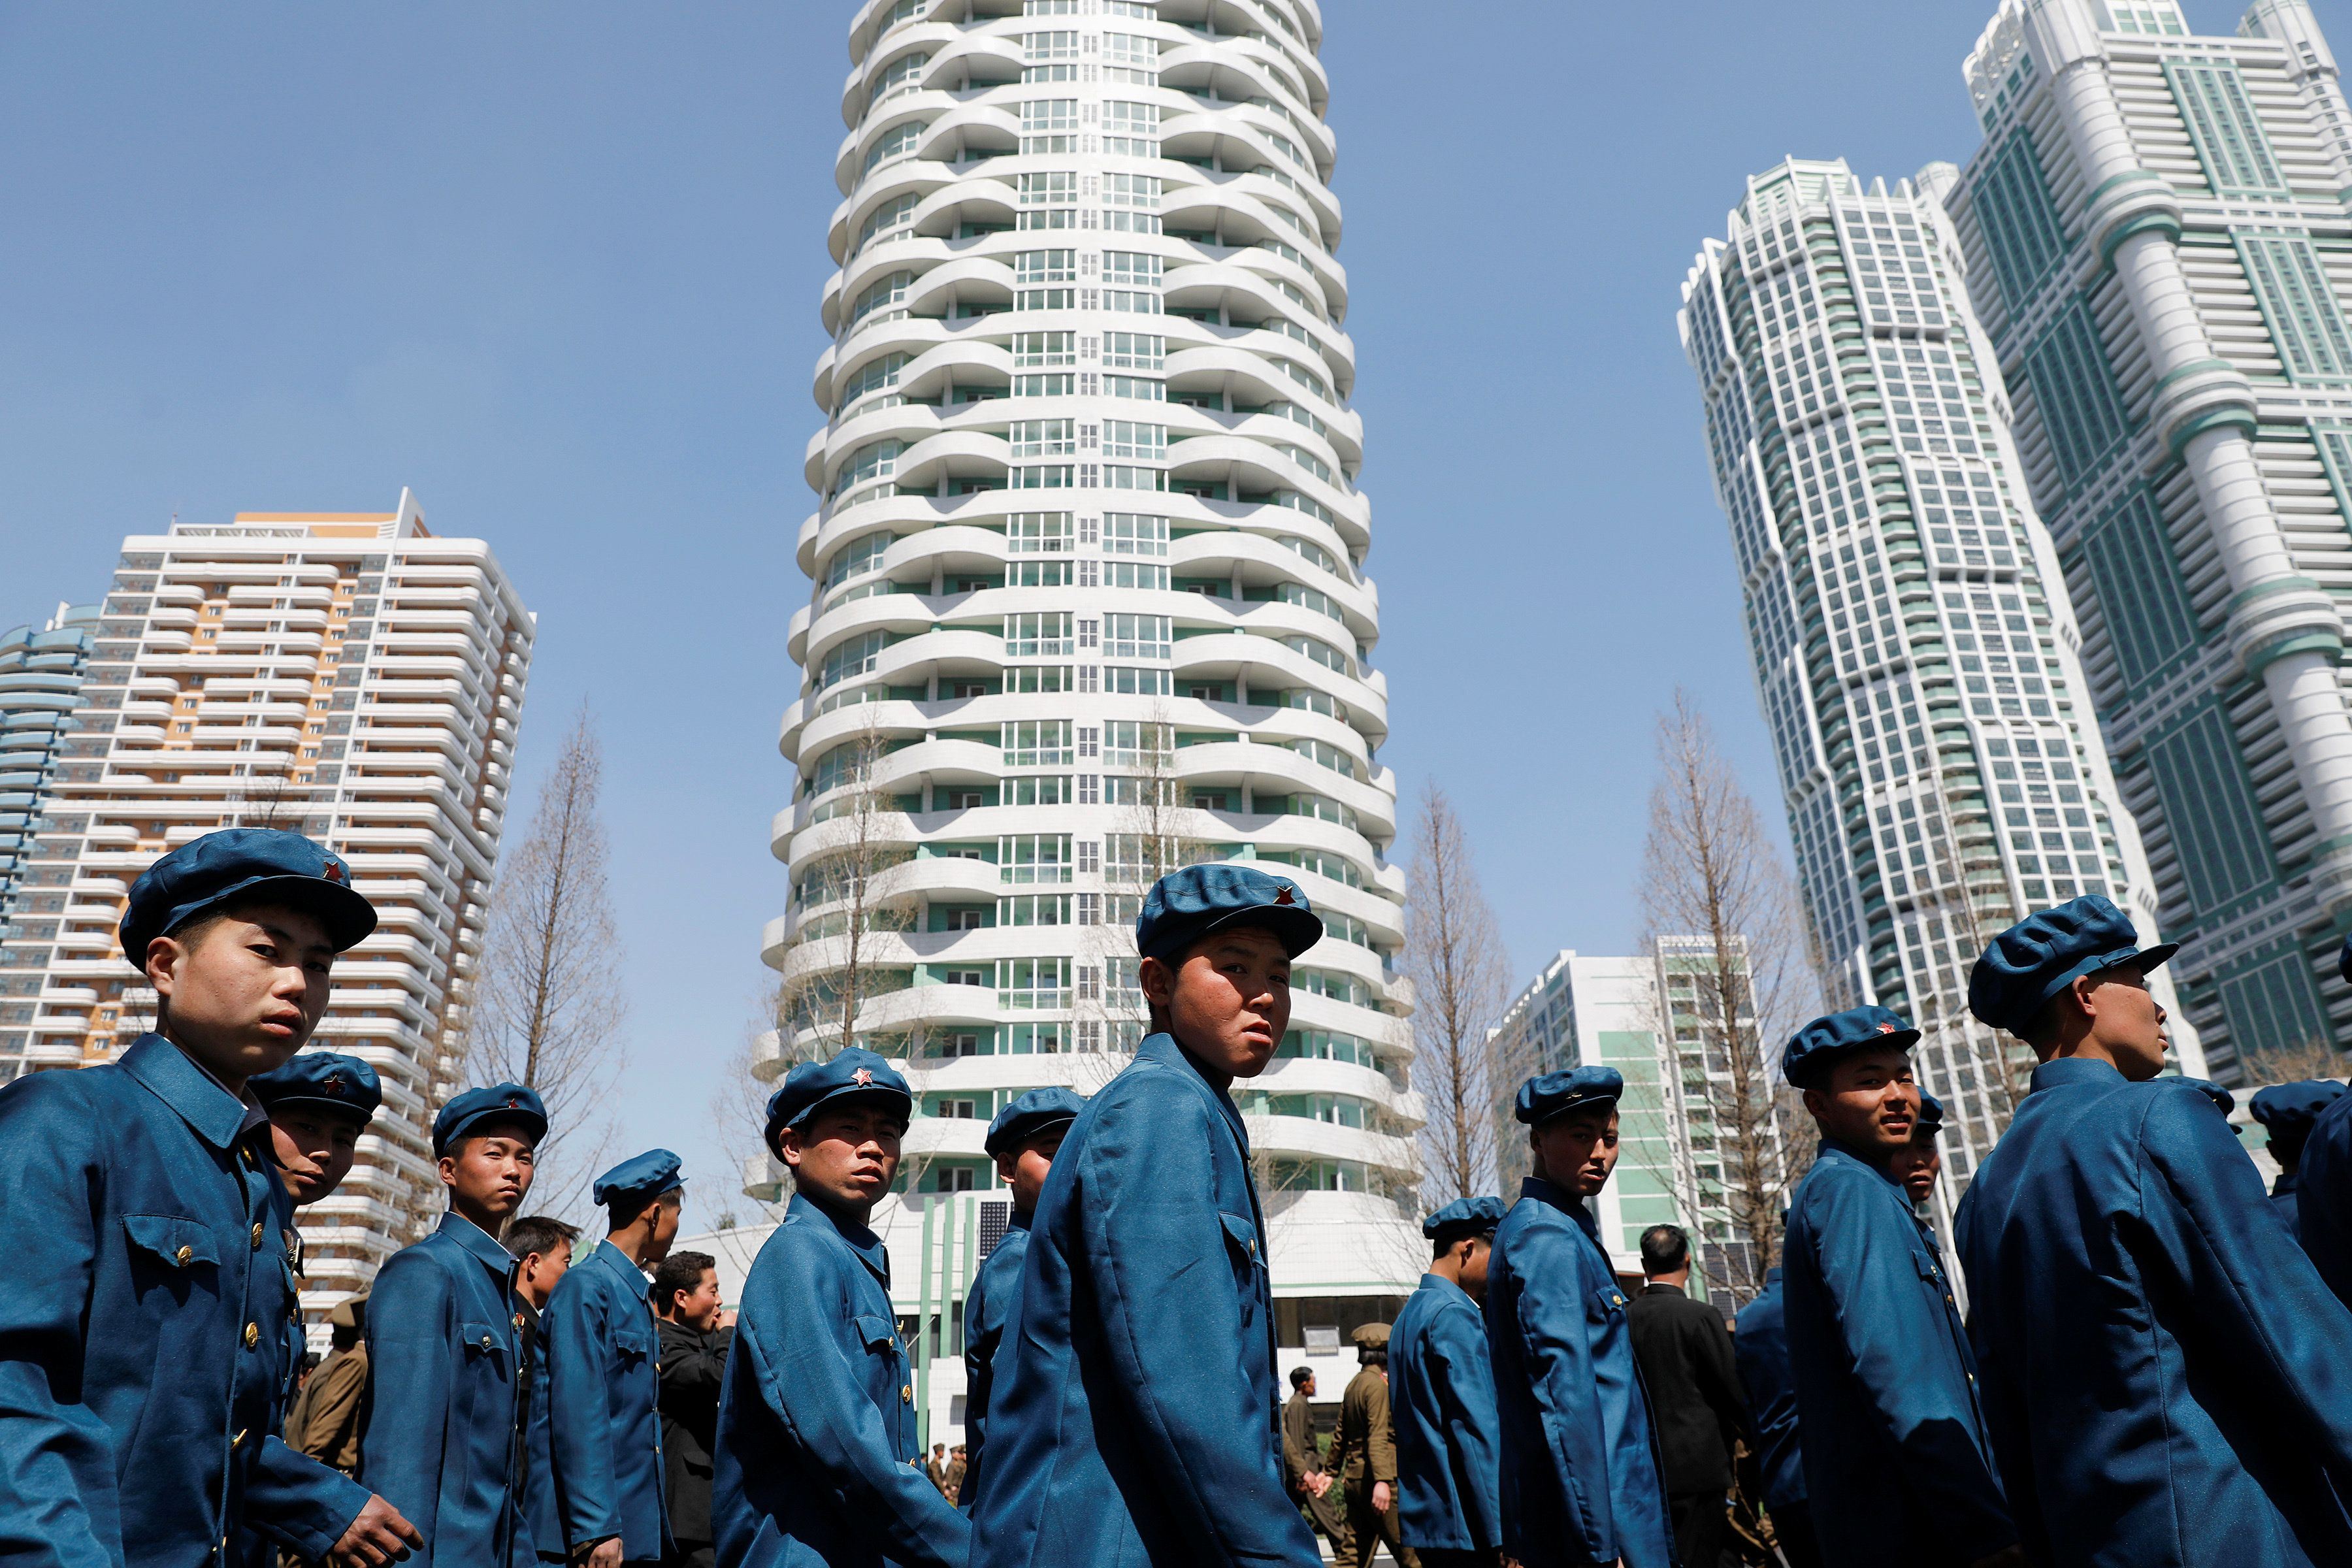 Men in uniforms walk between buildings after the opening ceremony of a newly constructed residential complex in Ryomyong street in Pyongyang, North Korea April 13, 2017.  REUTERS/Damir Sagolj